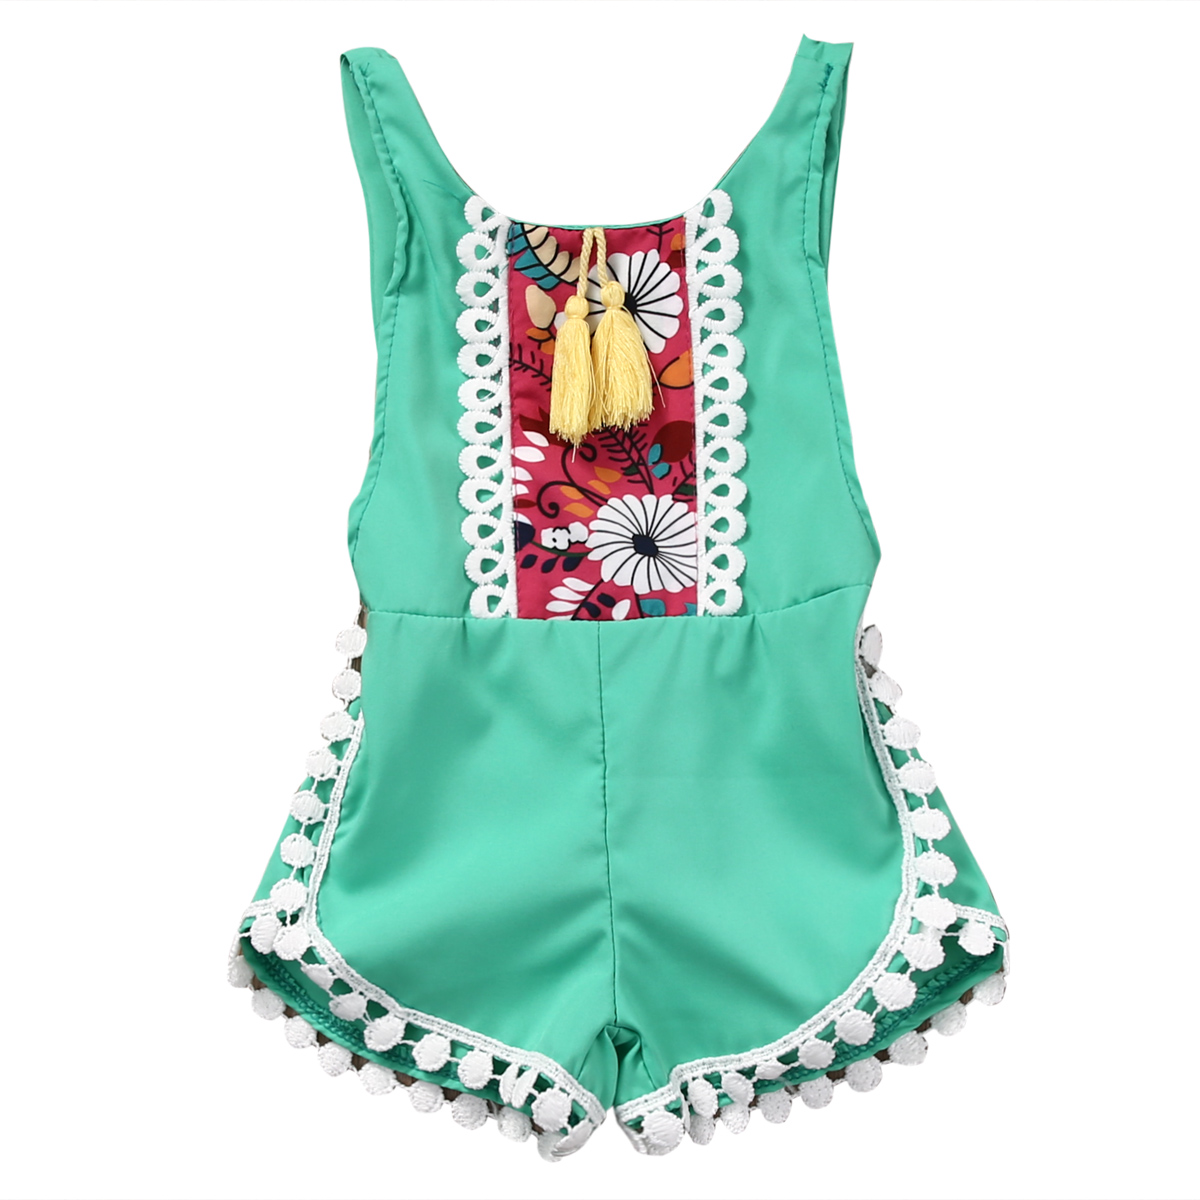 New China Style sleeveless tassel   Romper   Baby girls backless   Romper   Jumpsuit Sports Boy Outfit Unisex Sleeveless   romper   Clothing